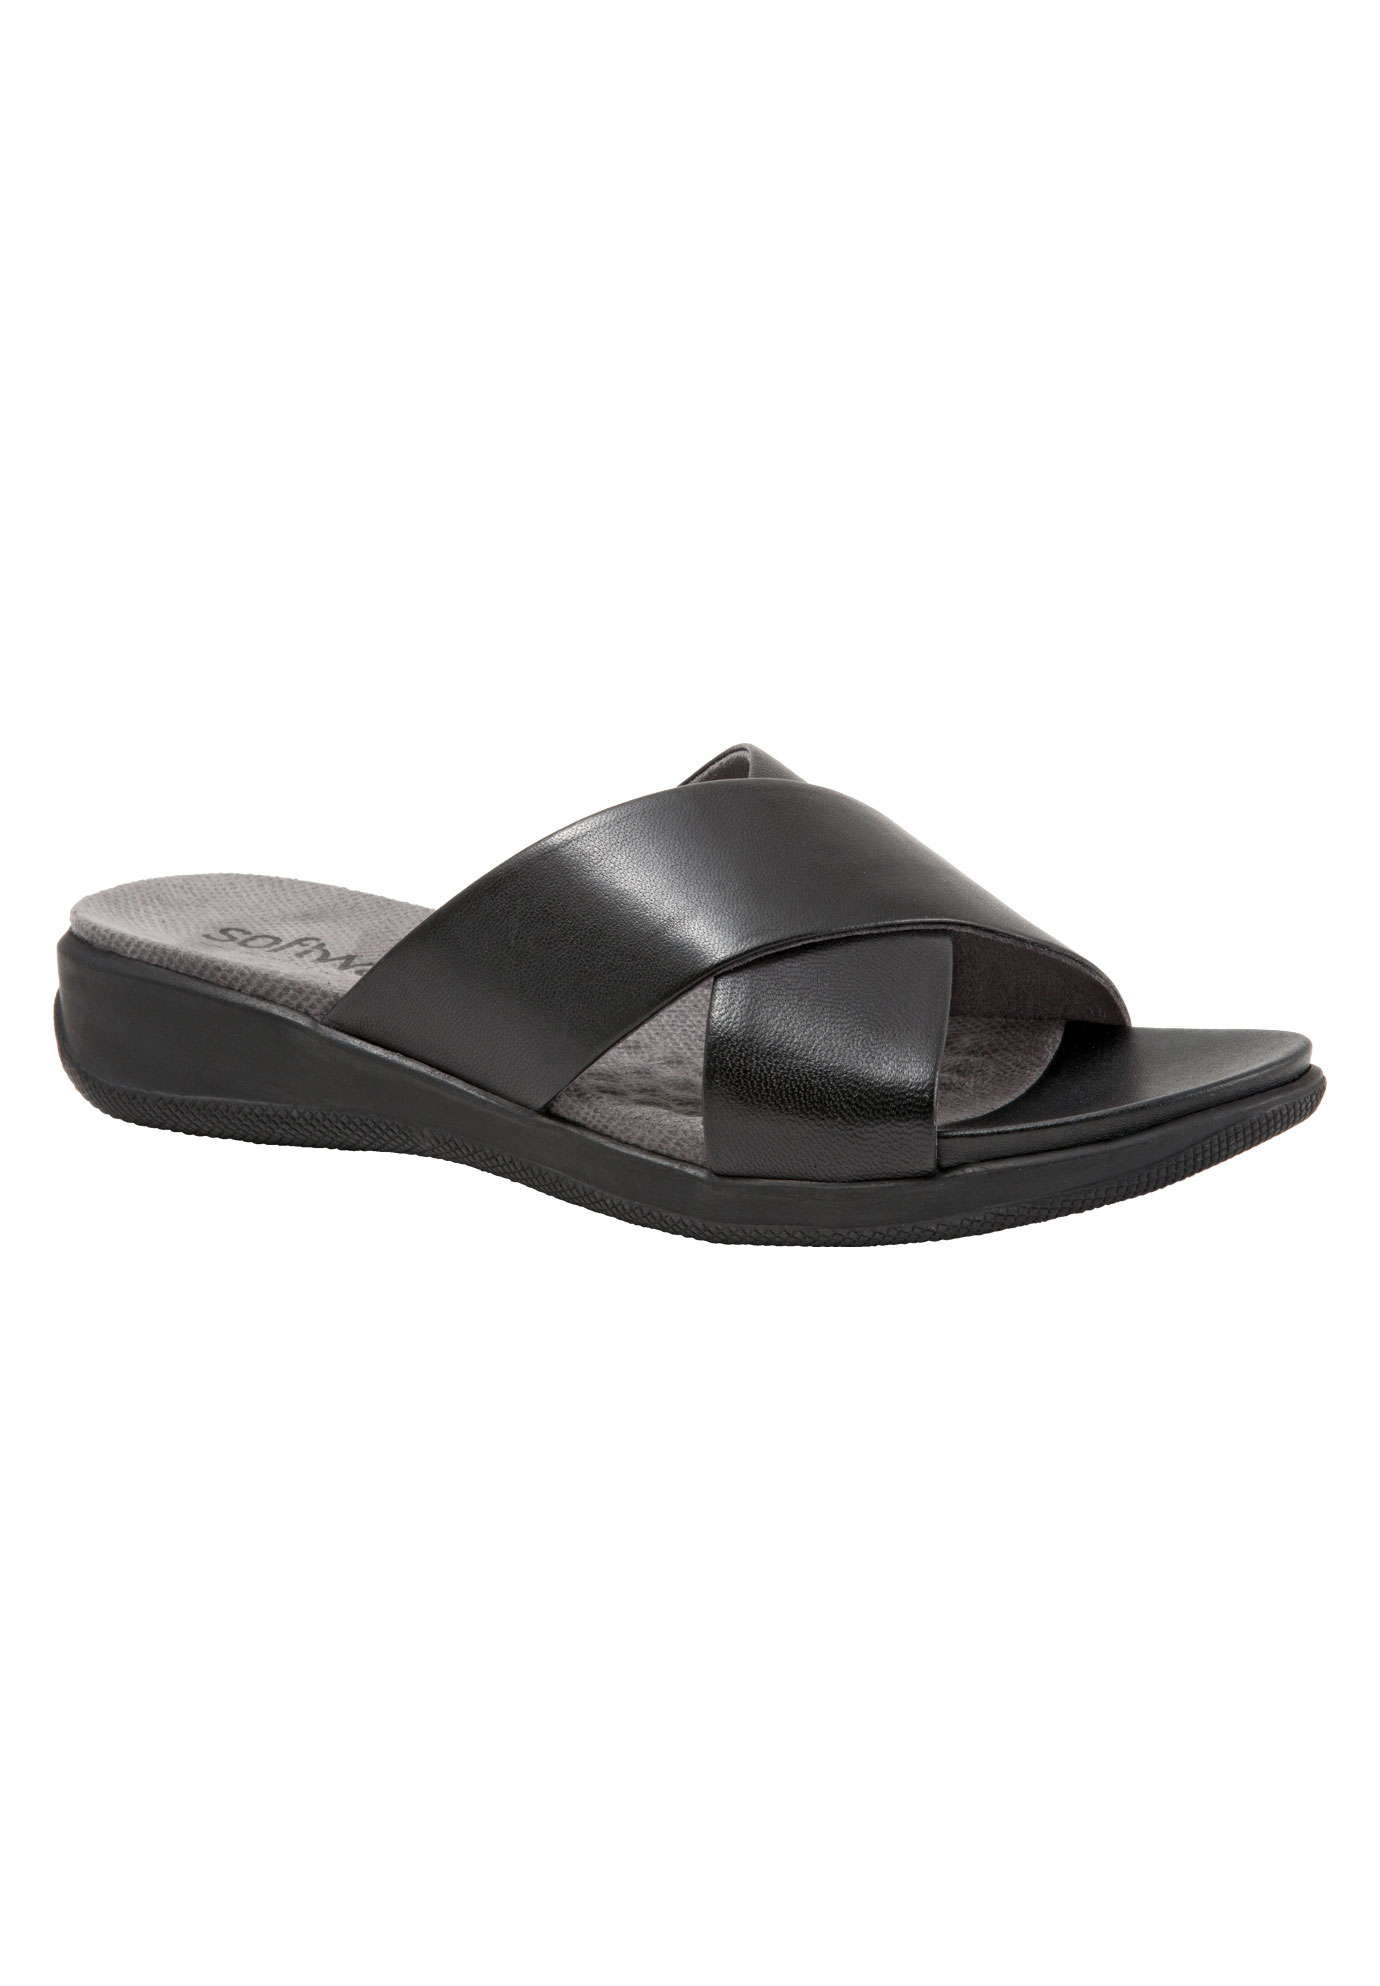 Tillman Sandals by SoftWalk®, BLACK, hi-res